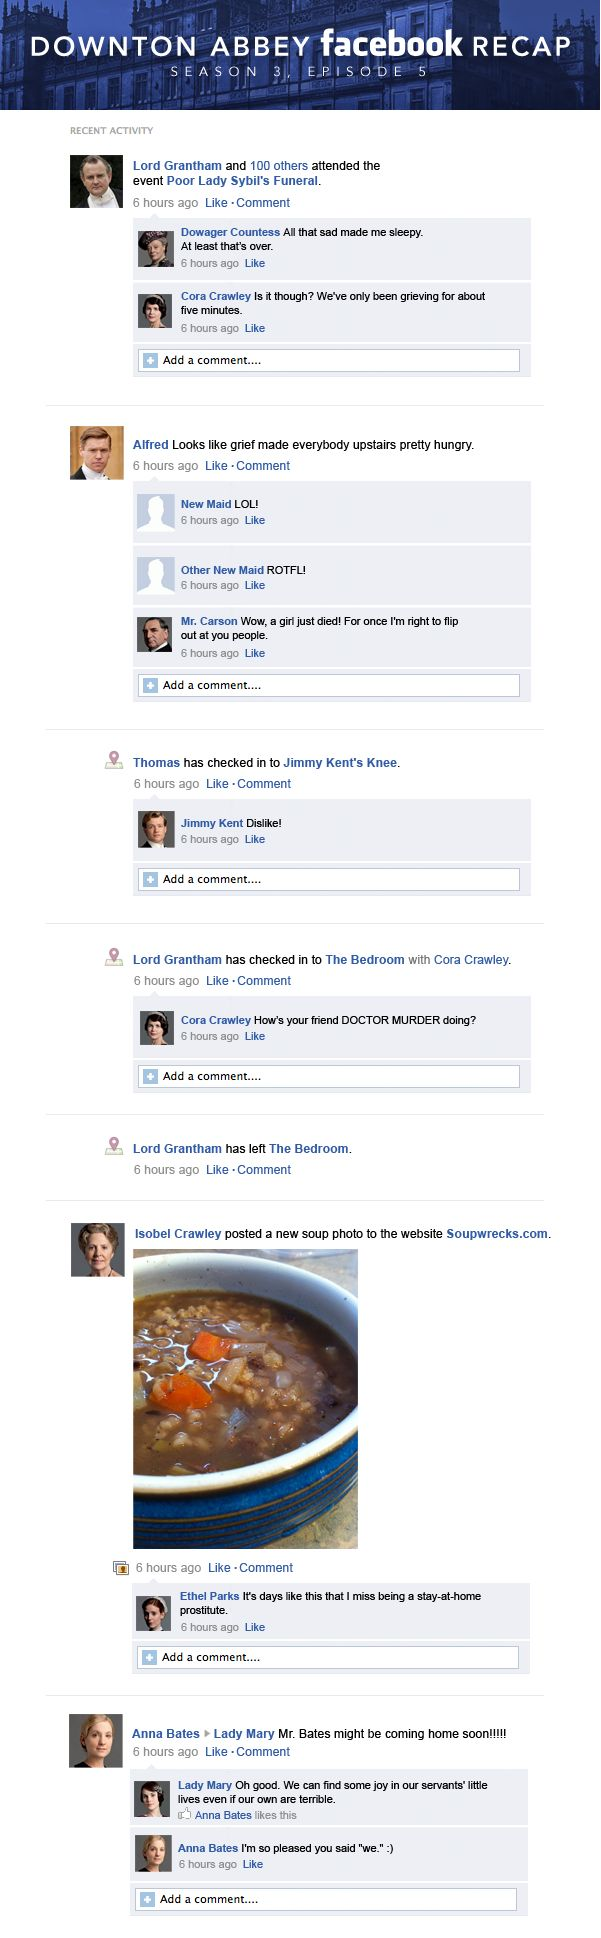 Downton Abbey Facebook Recap Season 3 Episode 5. ;-)